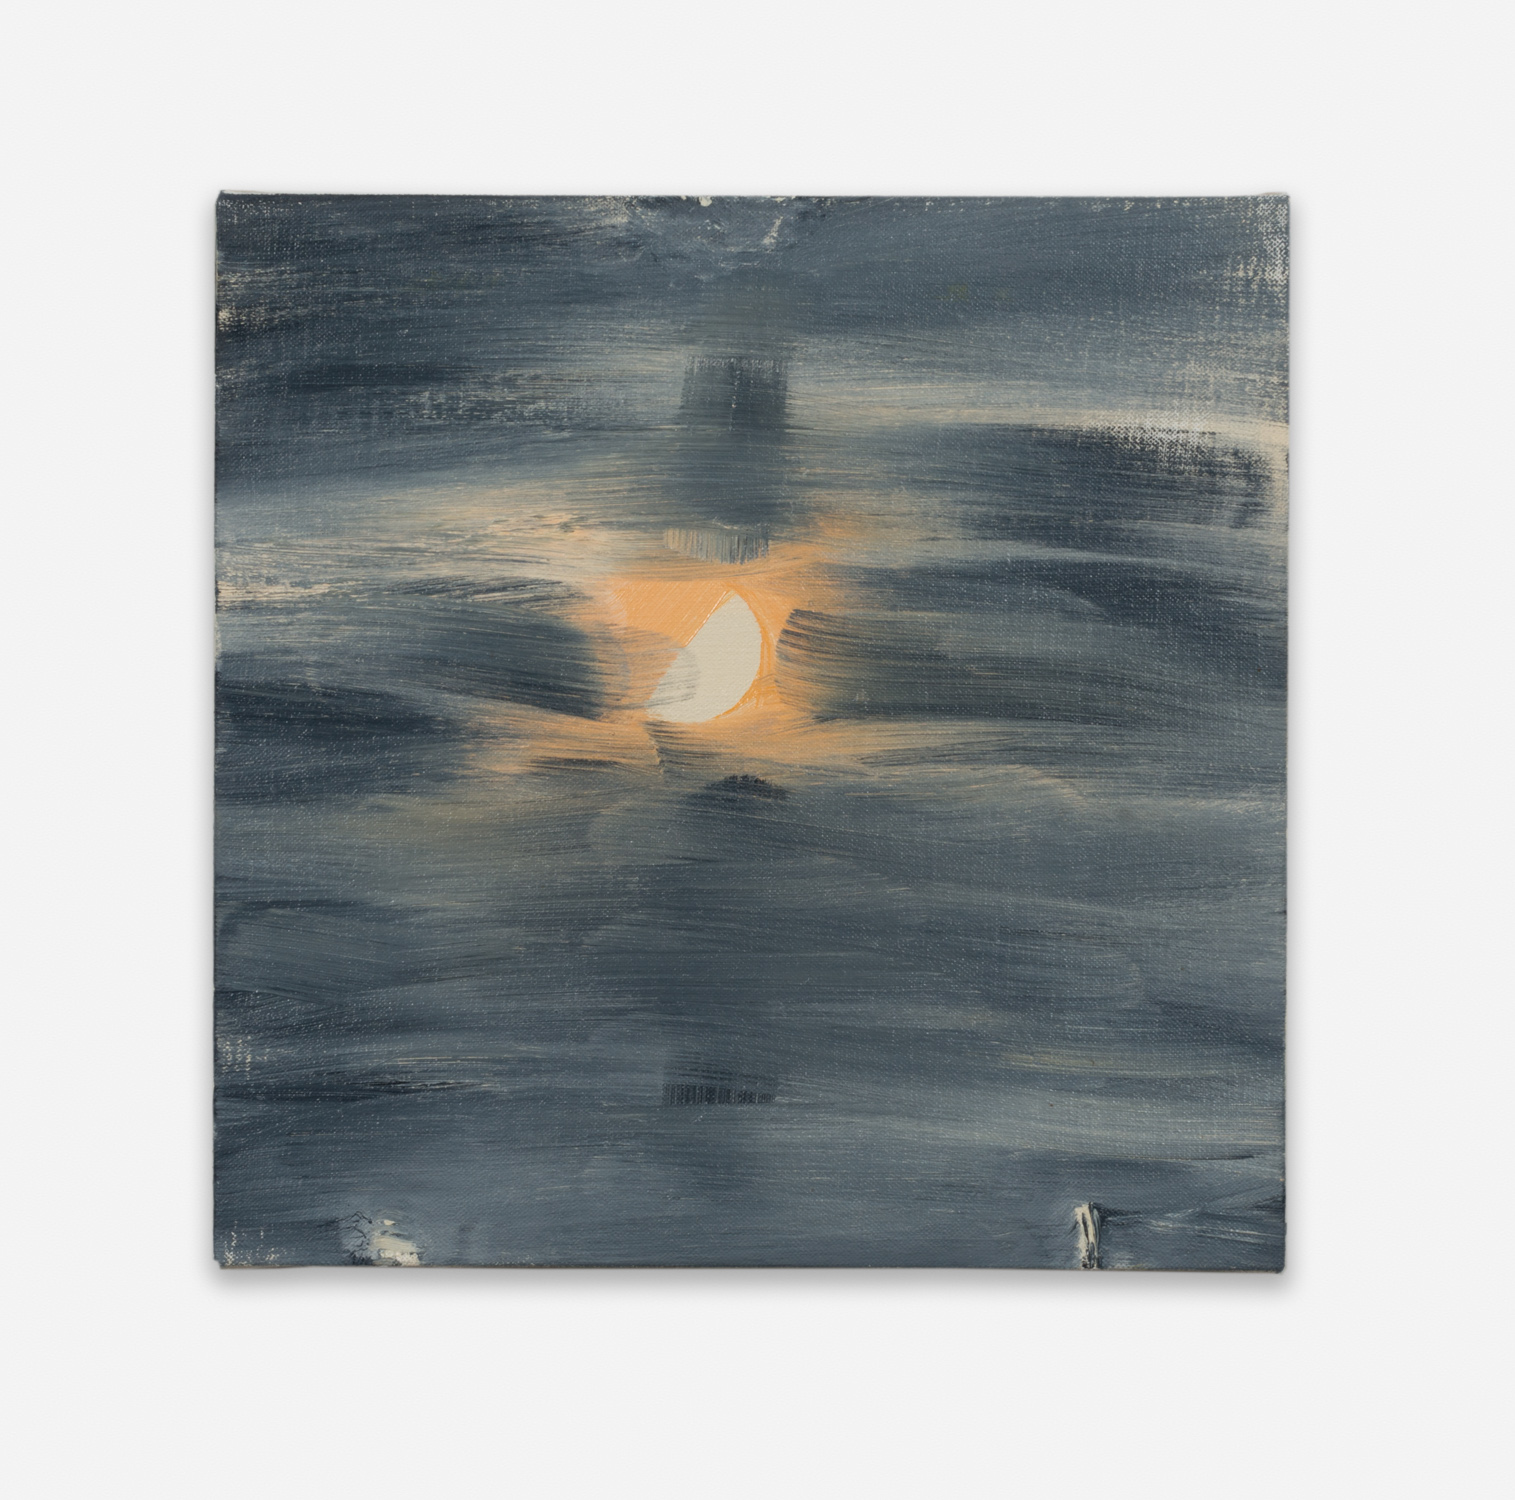 Ann Craven  Moon (Guilford, 8-25-12, 11:31PM), 2012  2012 Oil on linen 14h x 14w in AC132